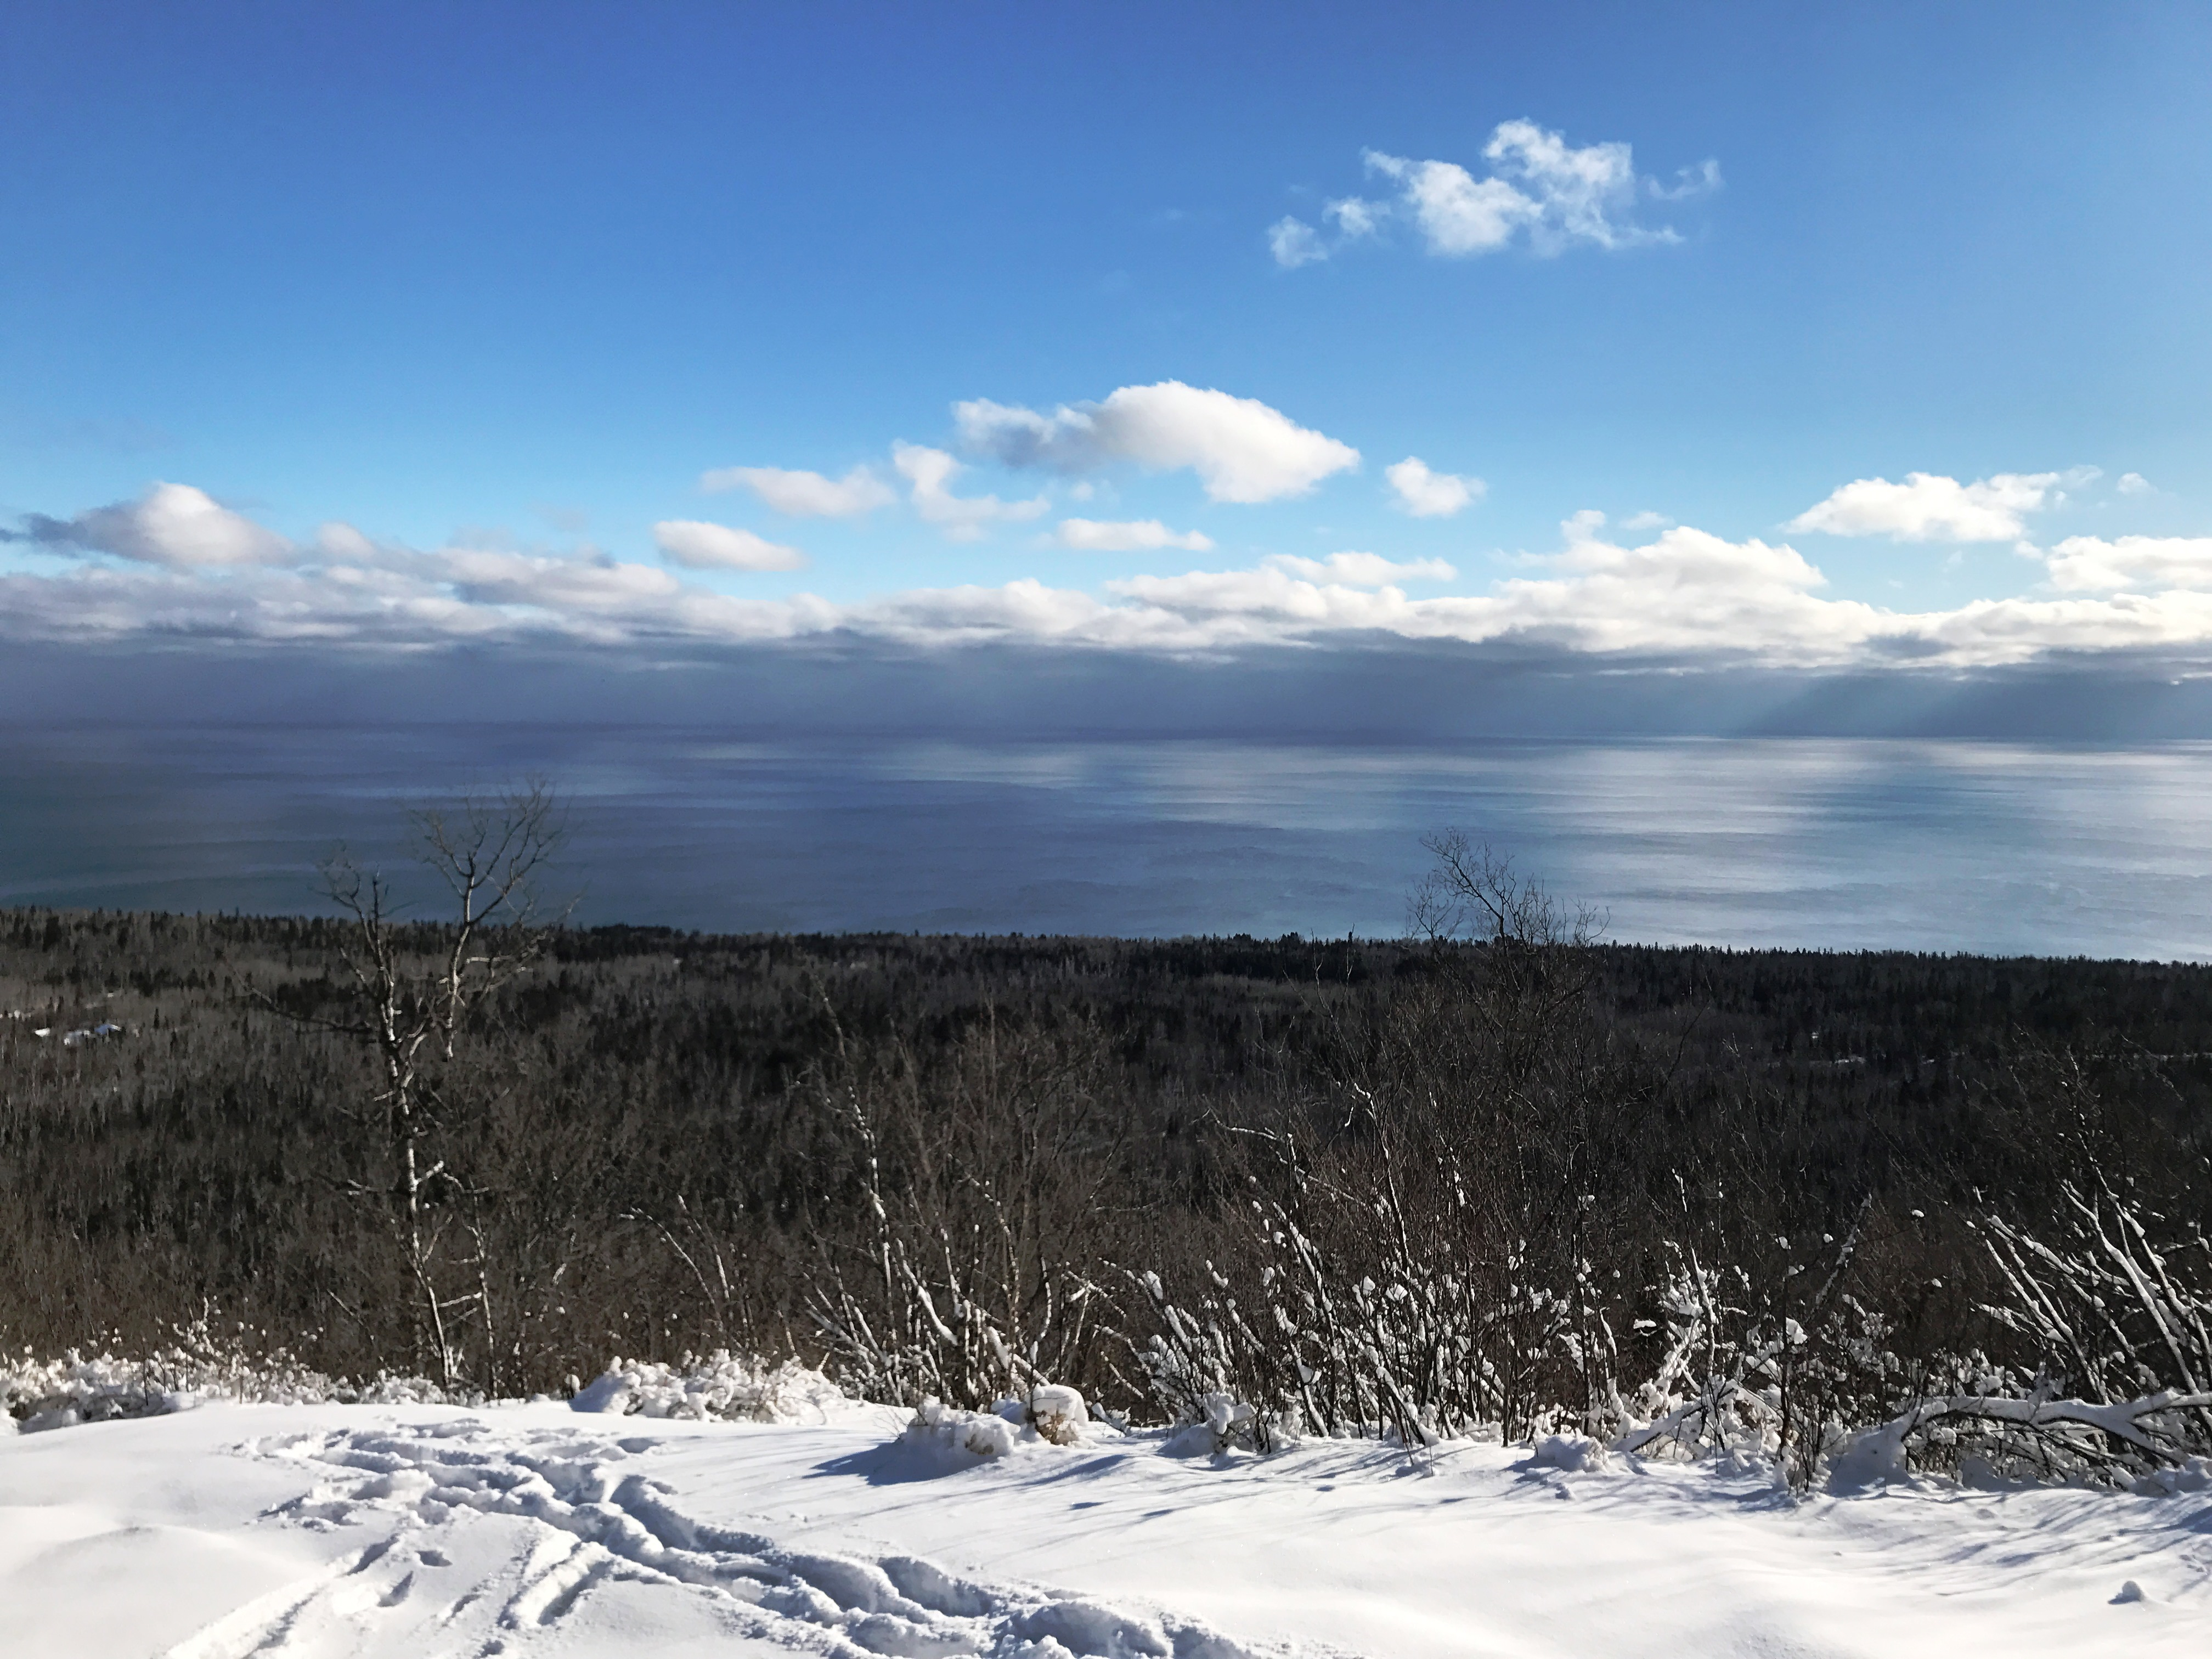 Winter View From Oberg Mountain - Dec. 20, 2016